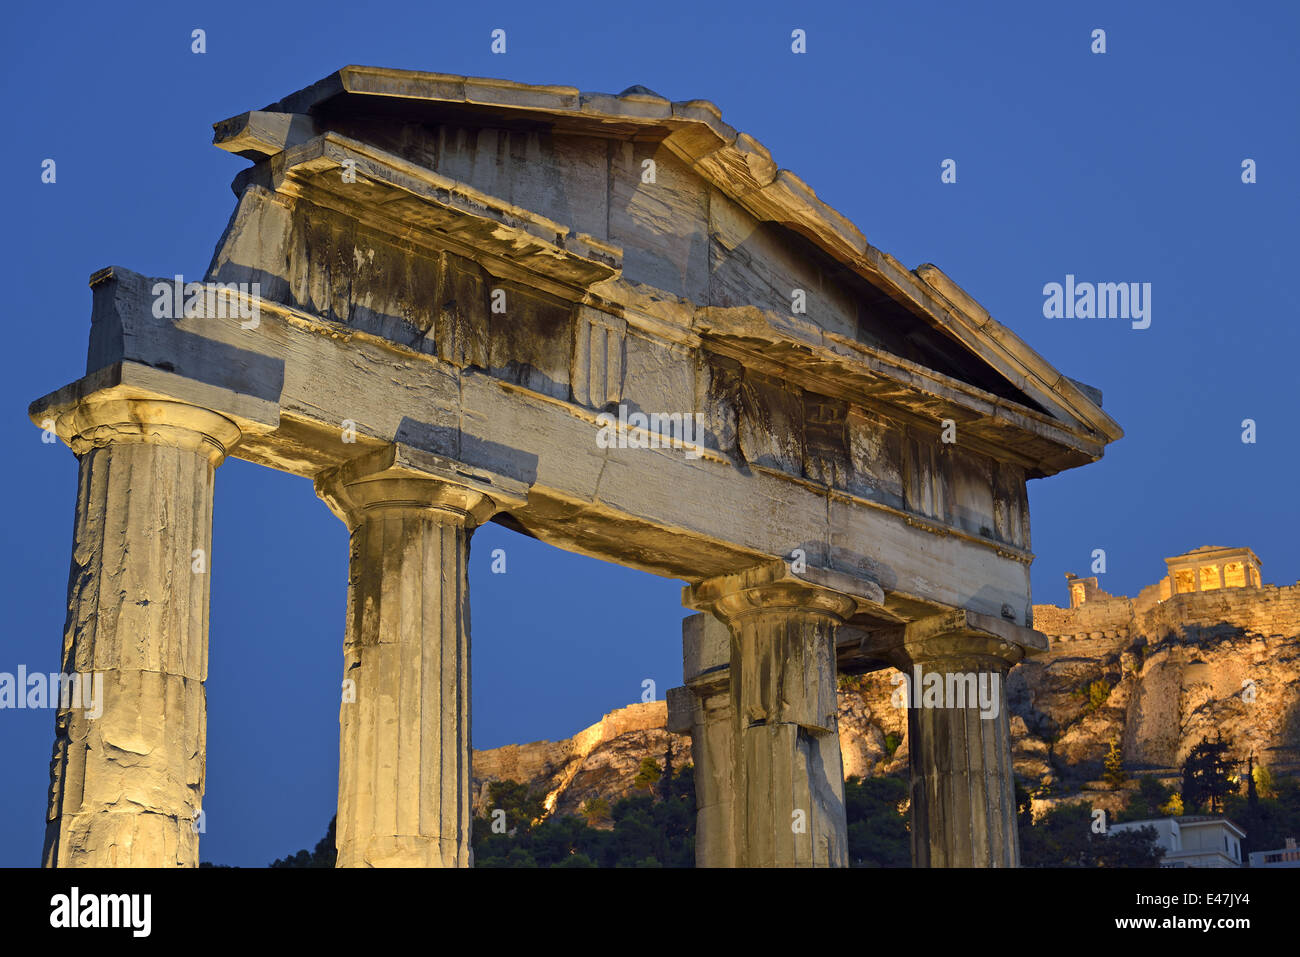 The Gate of Athina Archegetis in Roman Market and Acropolis, Athens, Greece - Stock Image